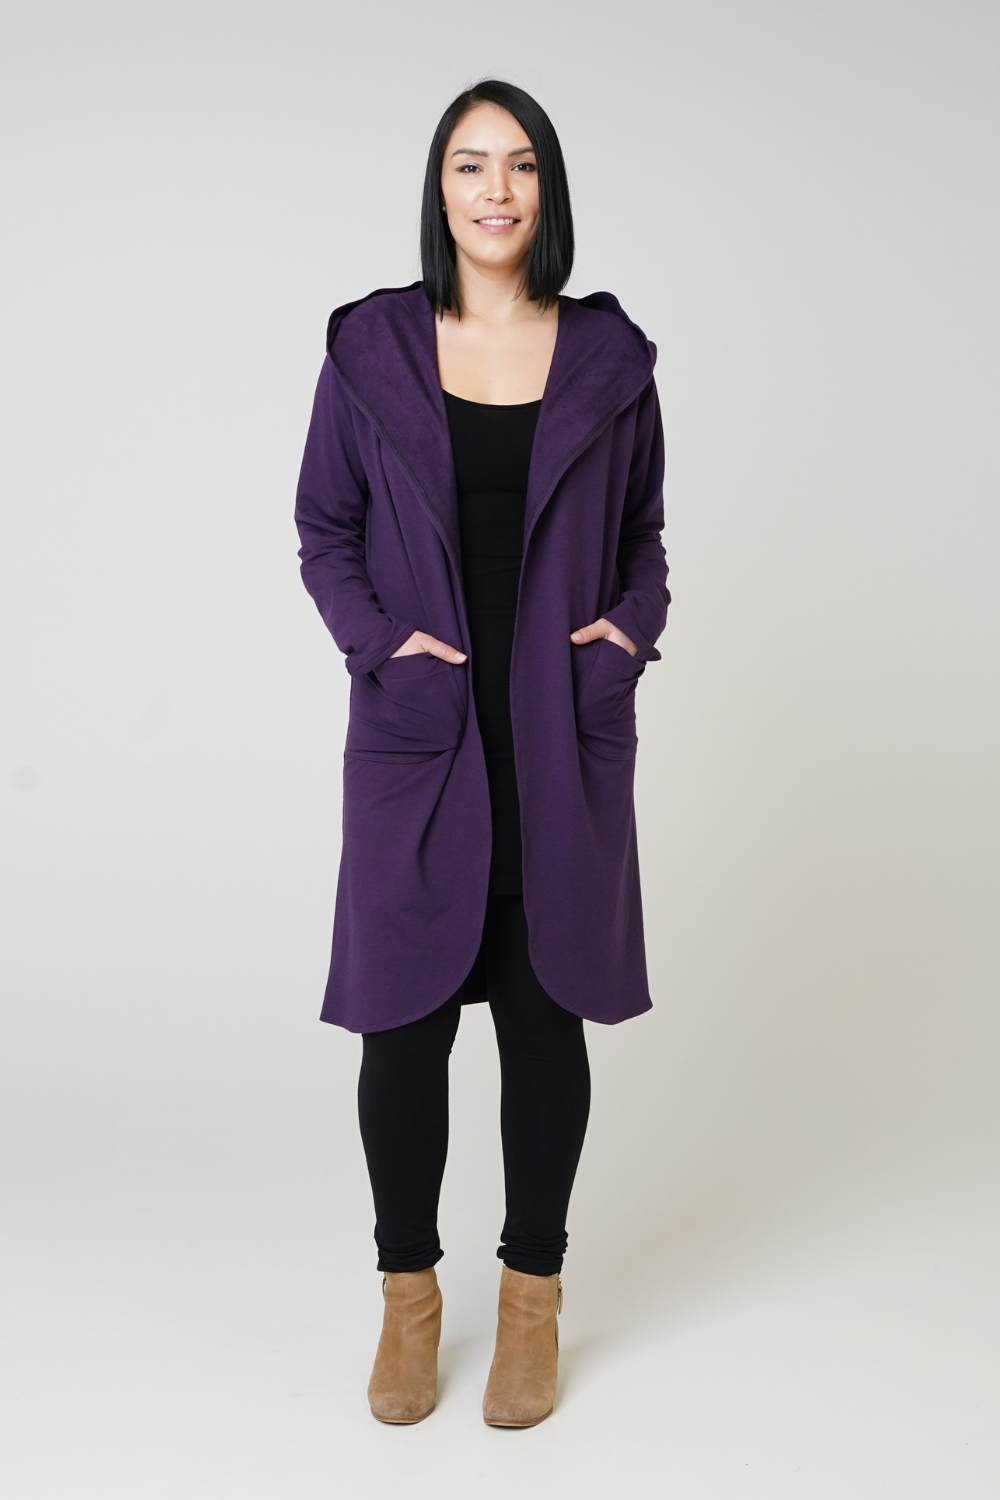 Violet Hooded Sleeved Duster - 3 Colours